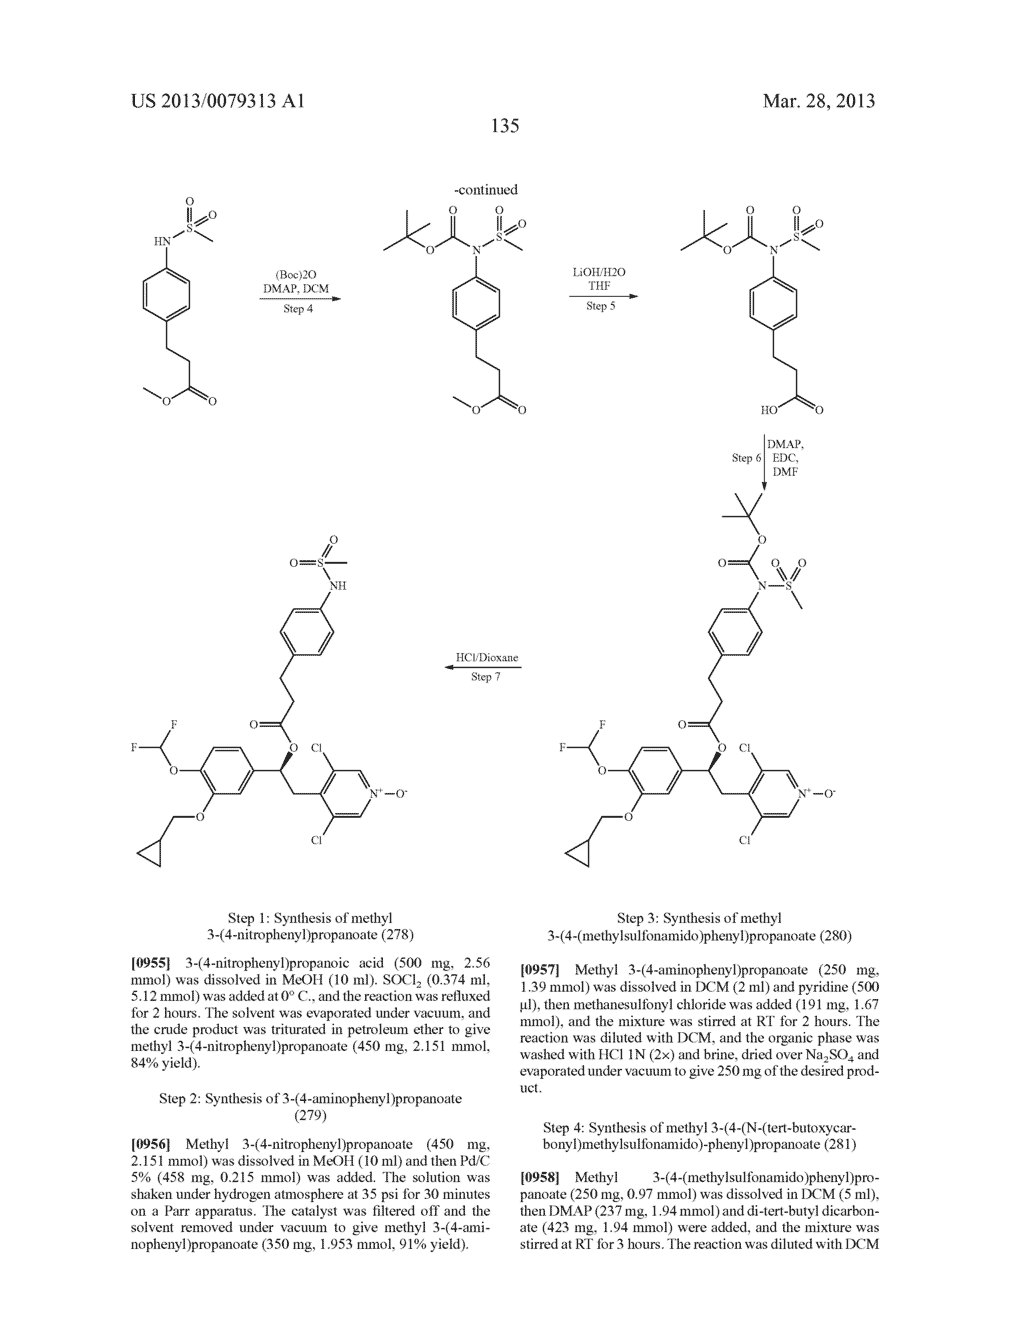 DERIVATIVES OF 1-PHENYL-2-PYRIDINYL ALKYL ALCOHOLS AS PHOSPHODIESTERASE     INHIBITORS - diagram, schematic, and image 136